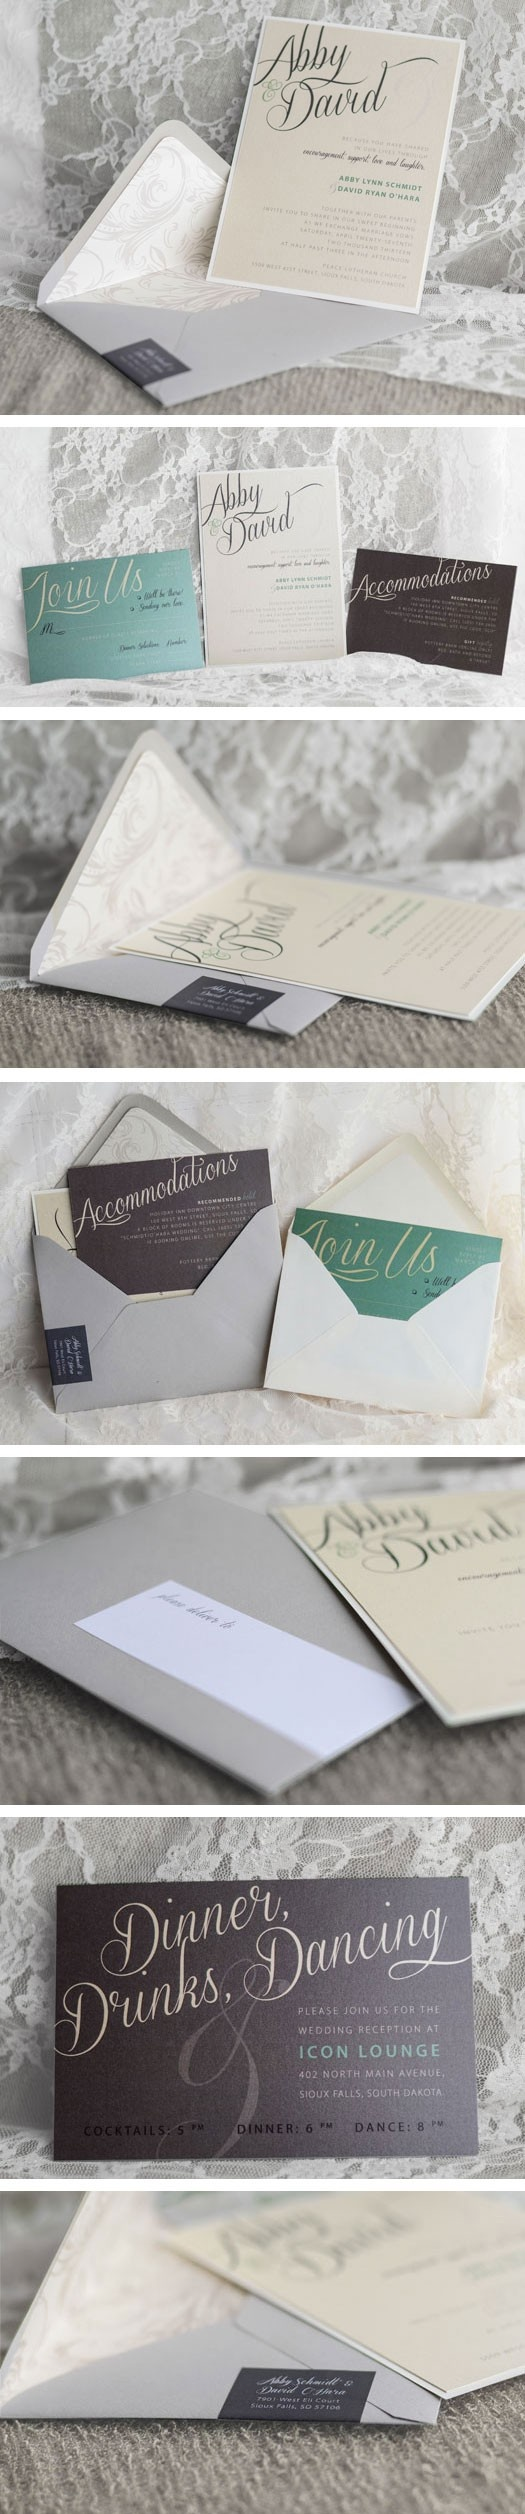 Neutral wedding invitations with seafoam green and chocolate brown accents, also has a wrap-around mailing label. Love these! By Copper Ink Wedding Designs